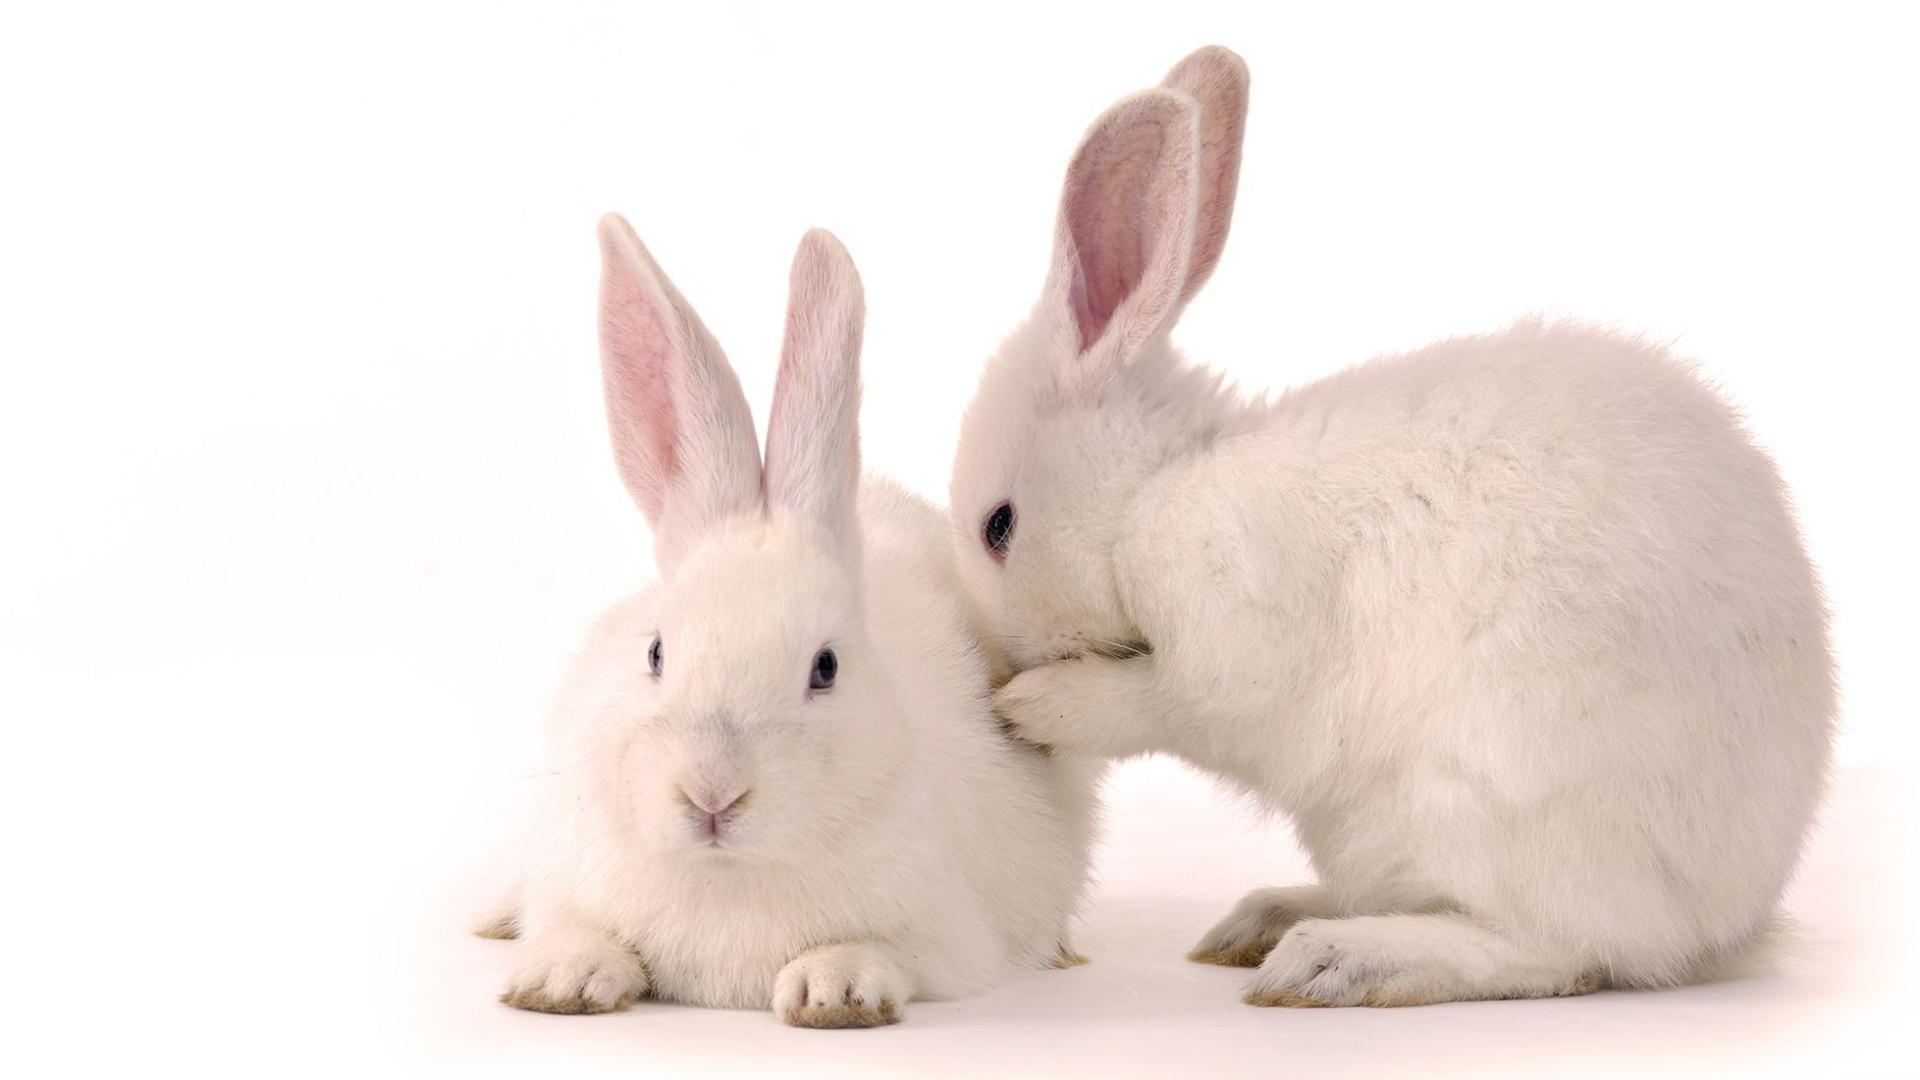 40489 download wallpaper Animals, Rabbits screensavers and pictures for free